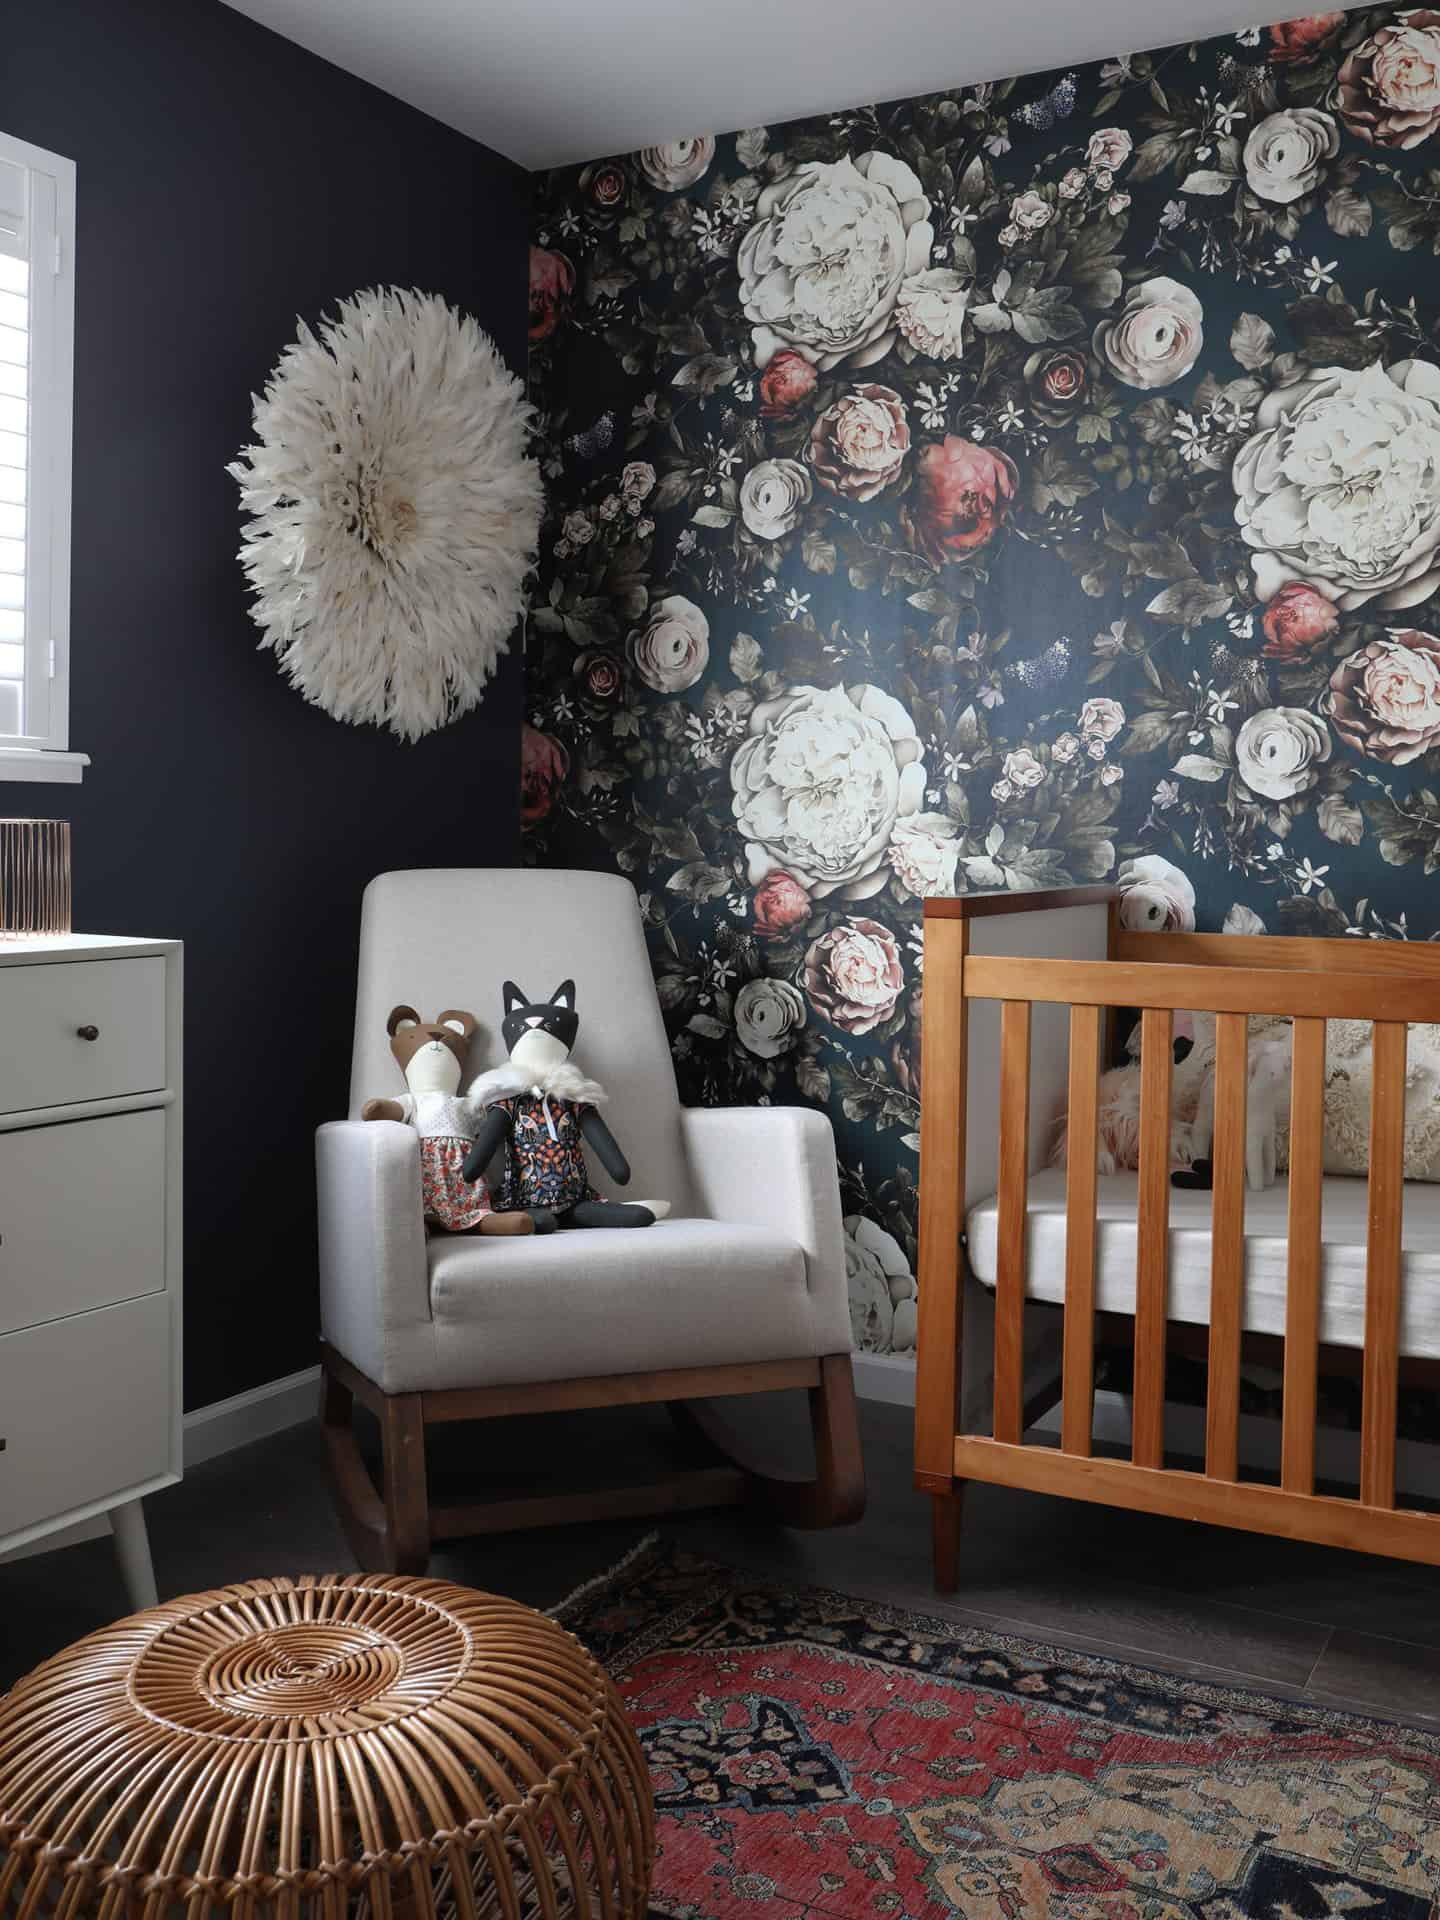 Dark And Moody Floral Wallpaper Sensational Surroundings